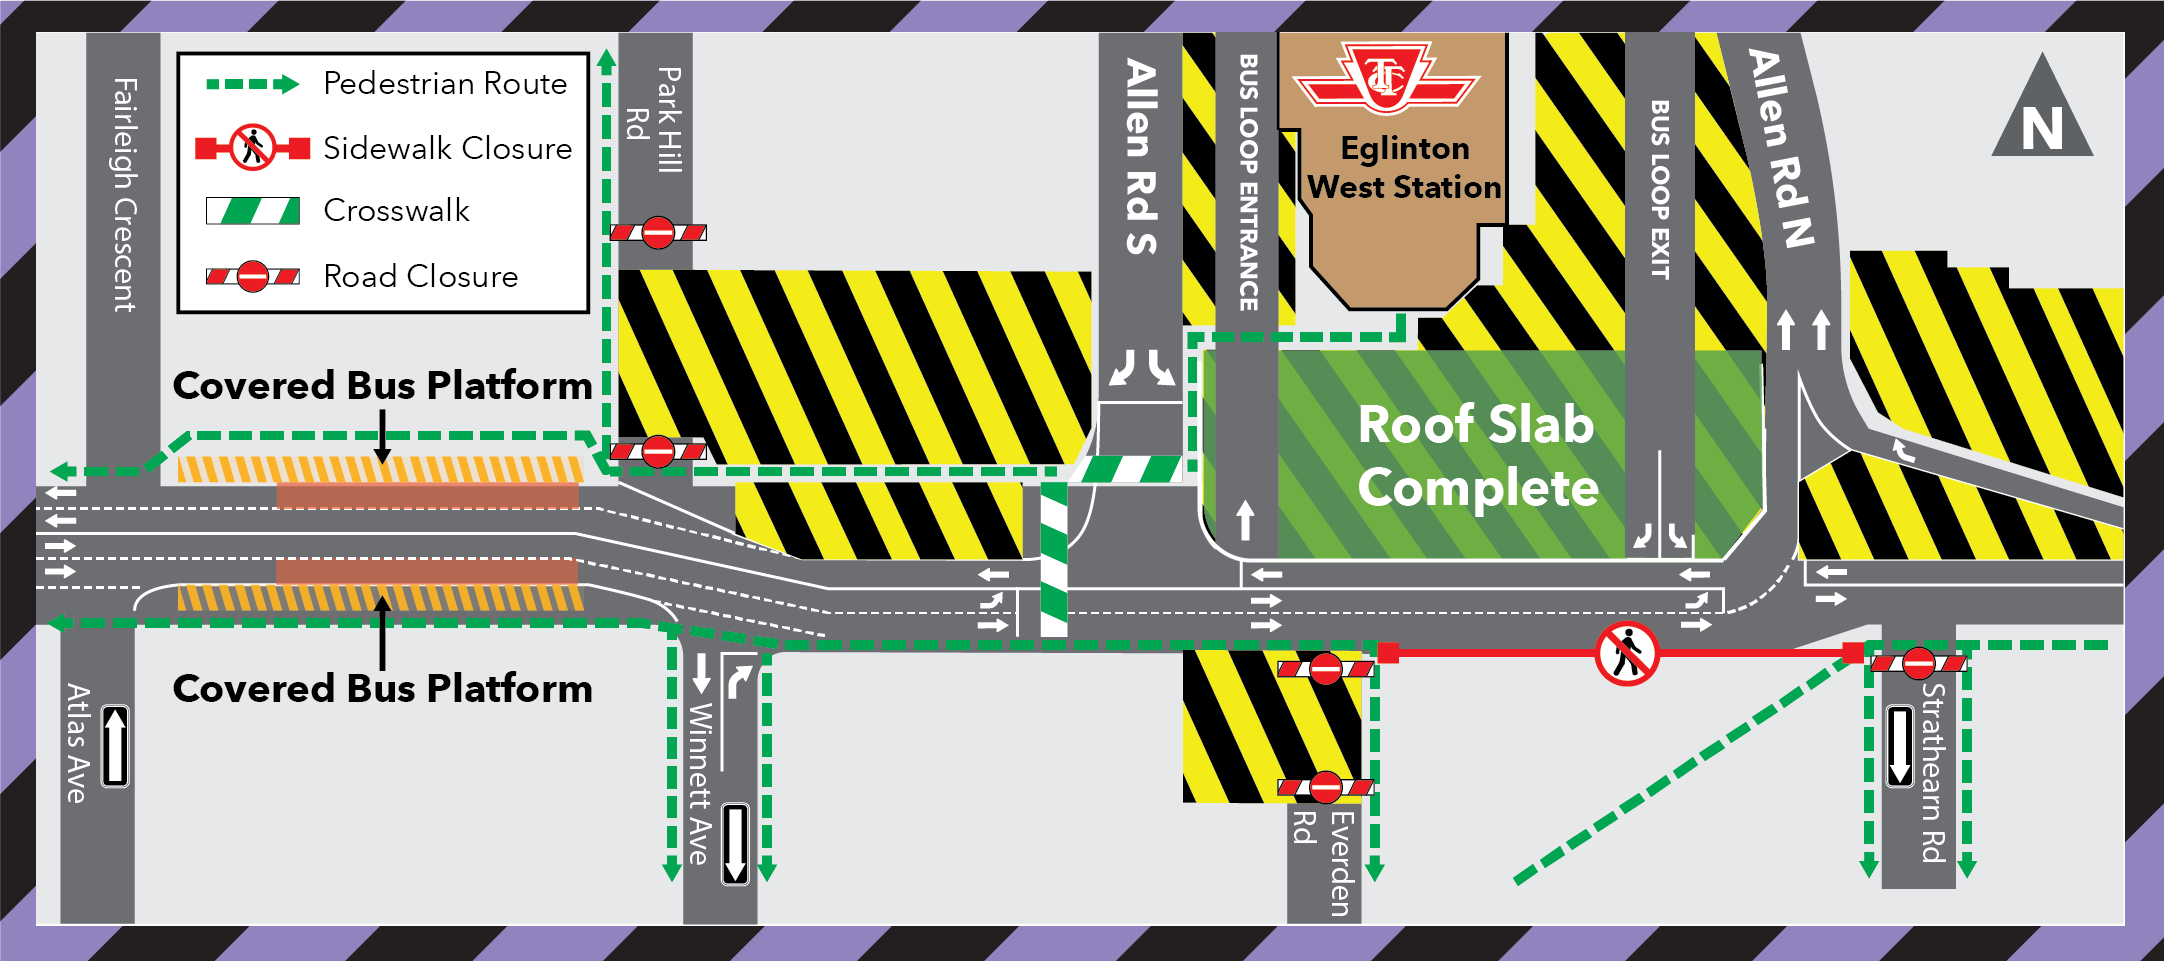 Eglinton West Station Bus Loop Re-opening December 20, 2020